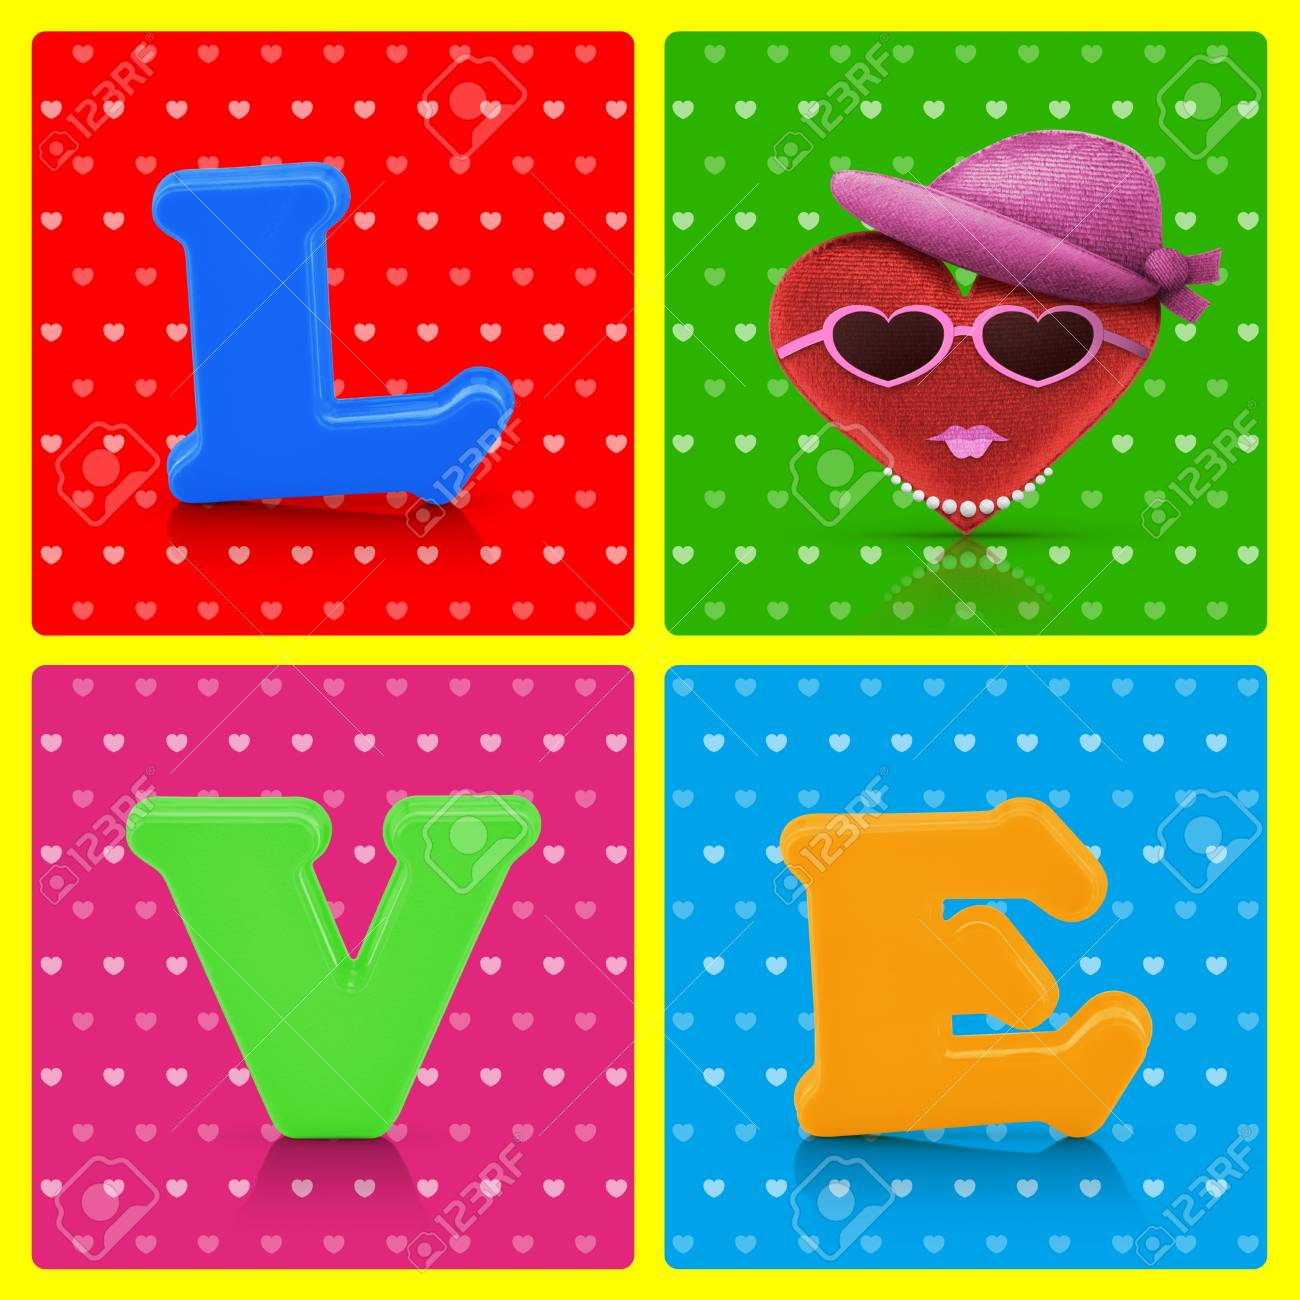 Love Heart Symbol Woman Character On Retro Background Love Concept